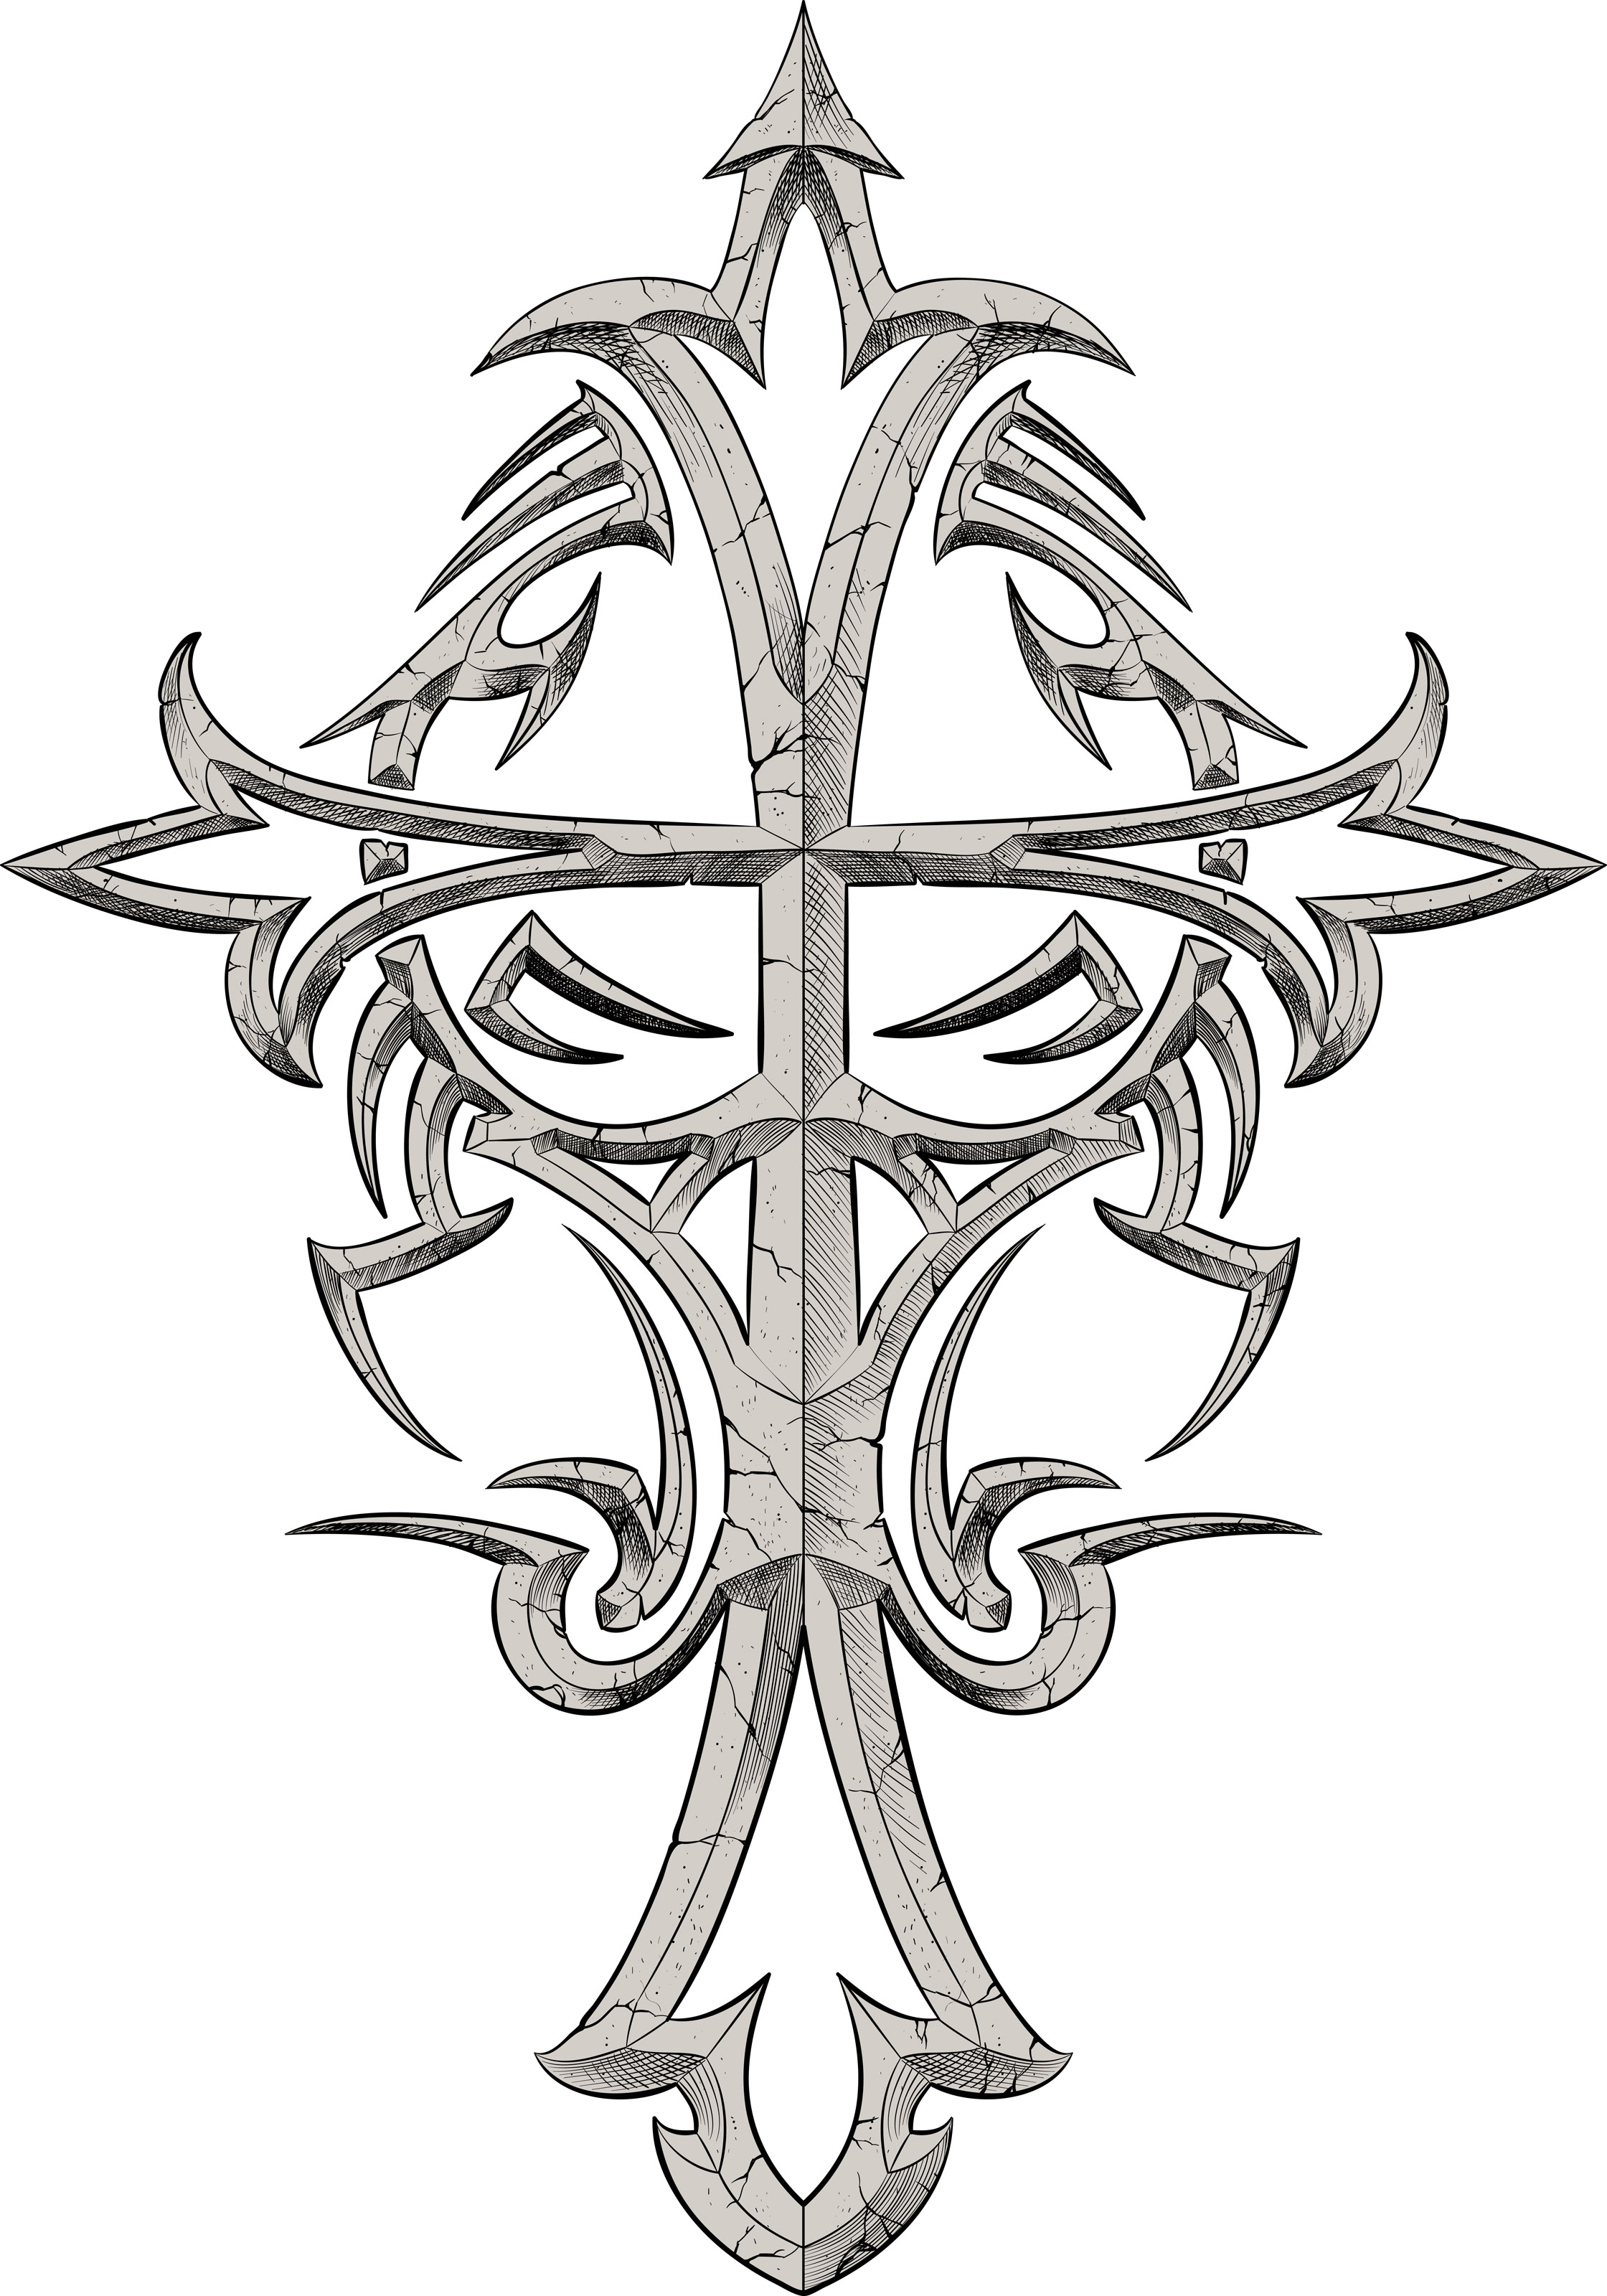 Pictures Of Tribal Cross Tattoos: Grey Ink Tribal Cross Tattoo Design